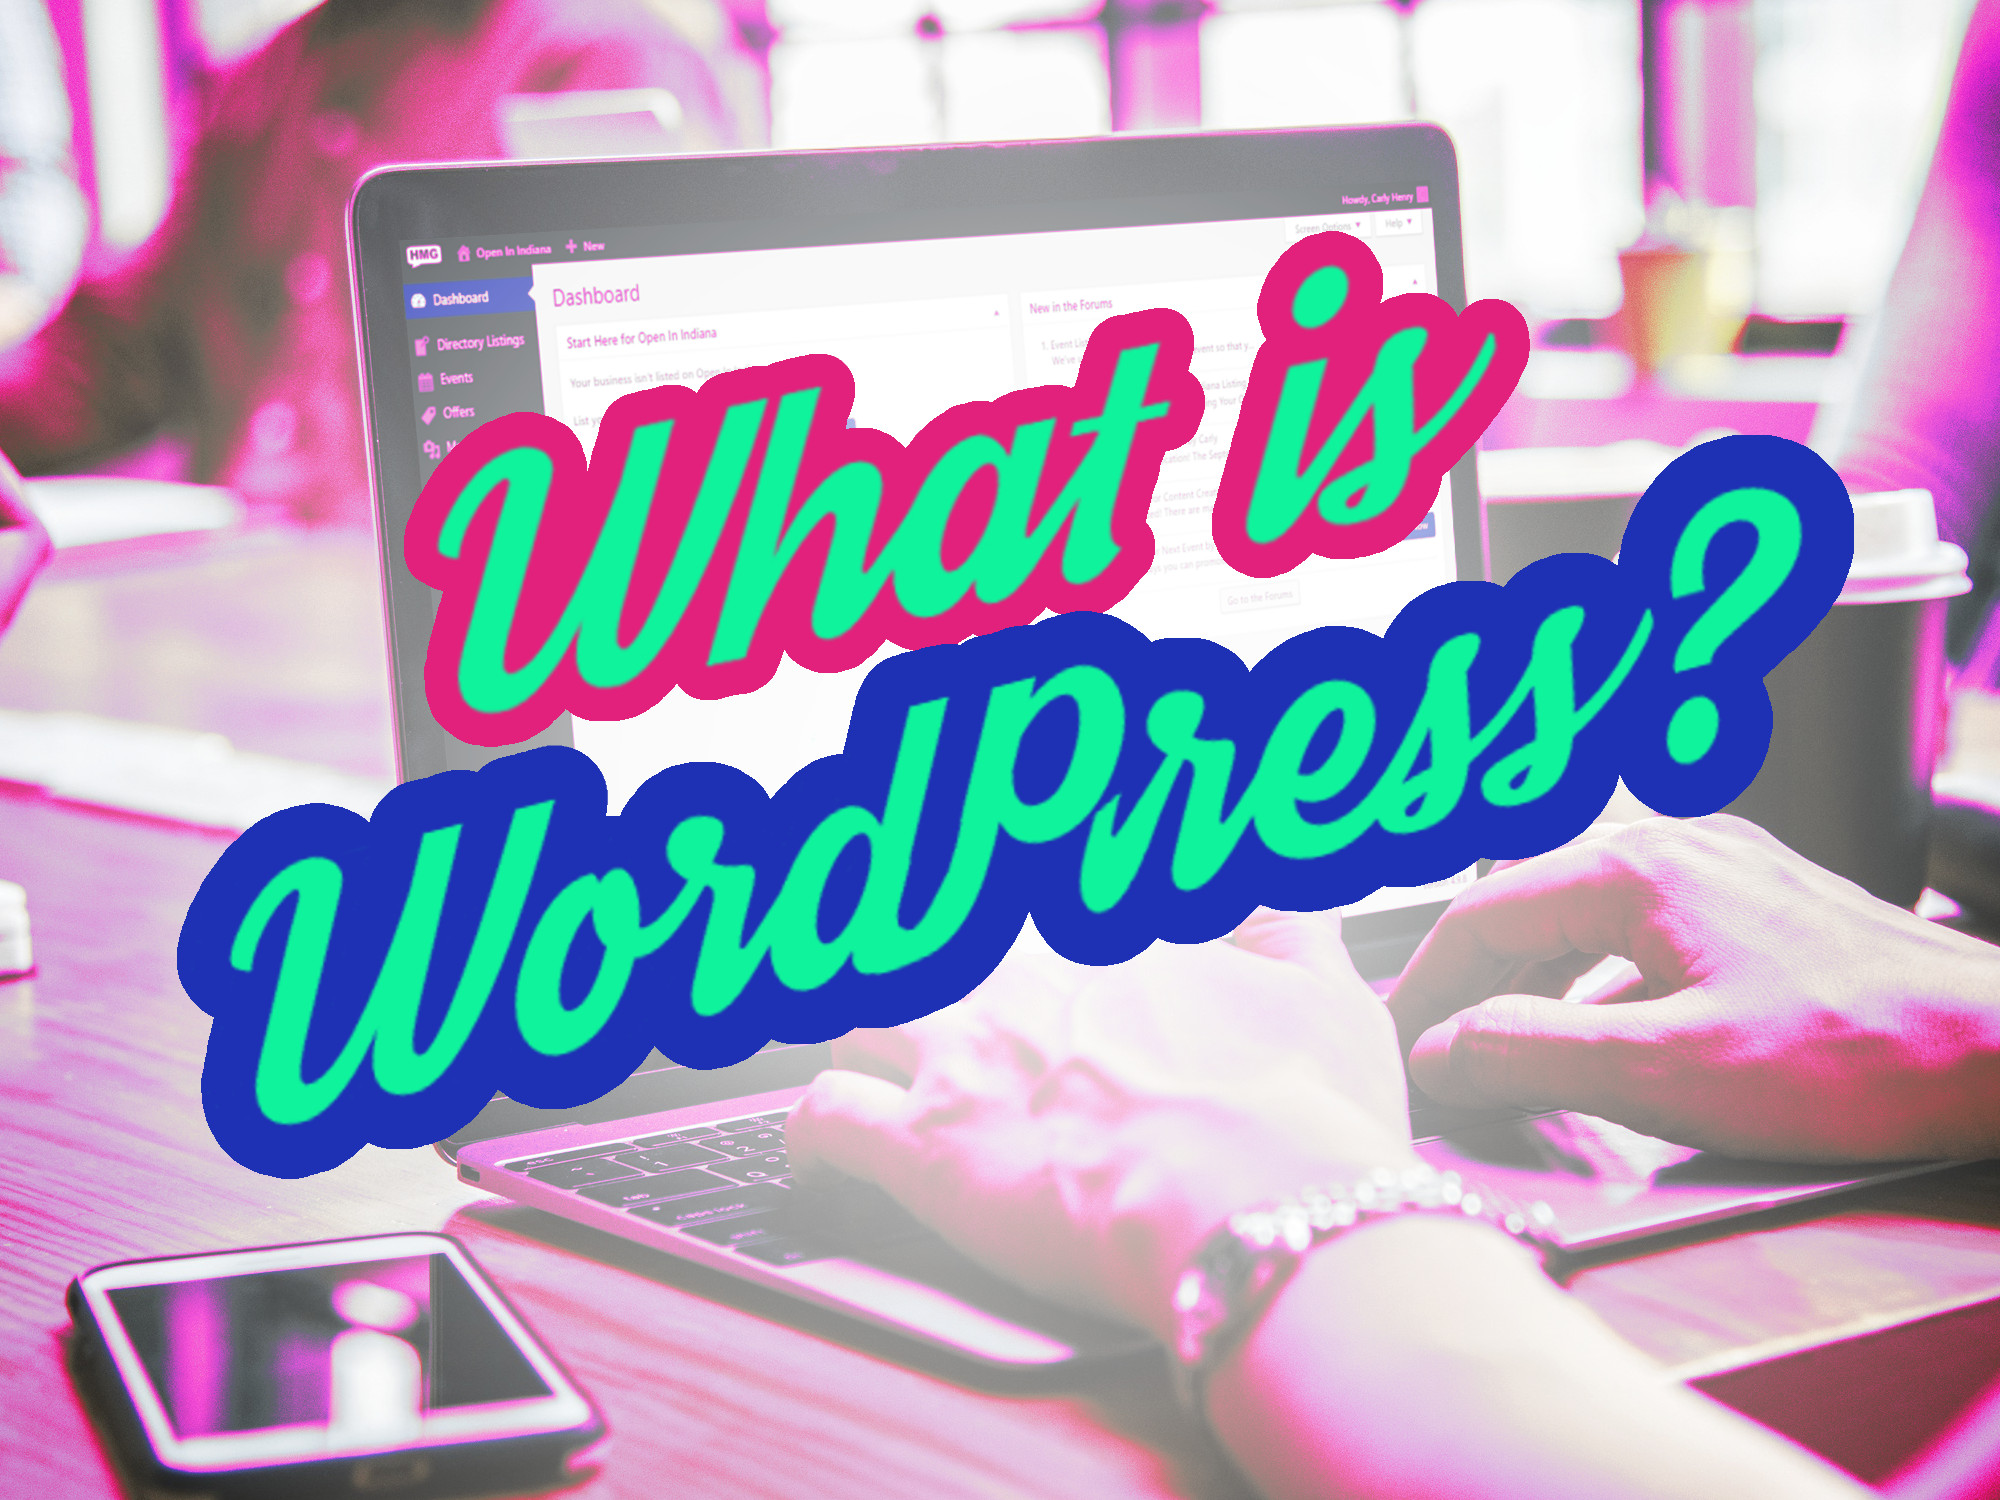 What is WordPress in green text, over pink and blue outlines, over an image of someone's hands using WordPress on a laptop.